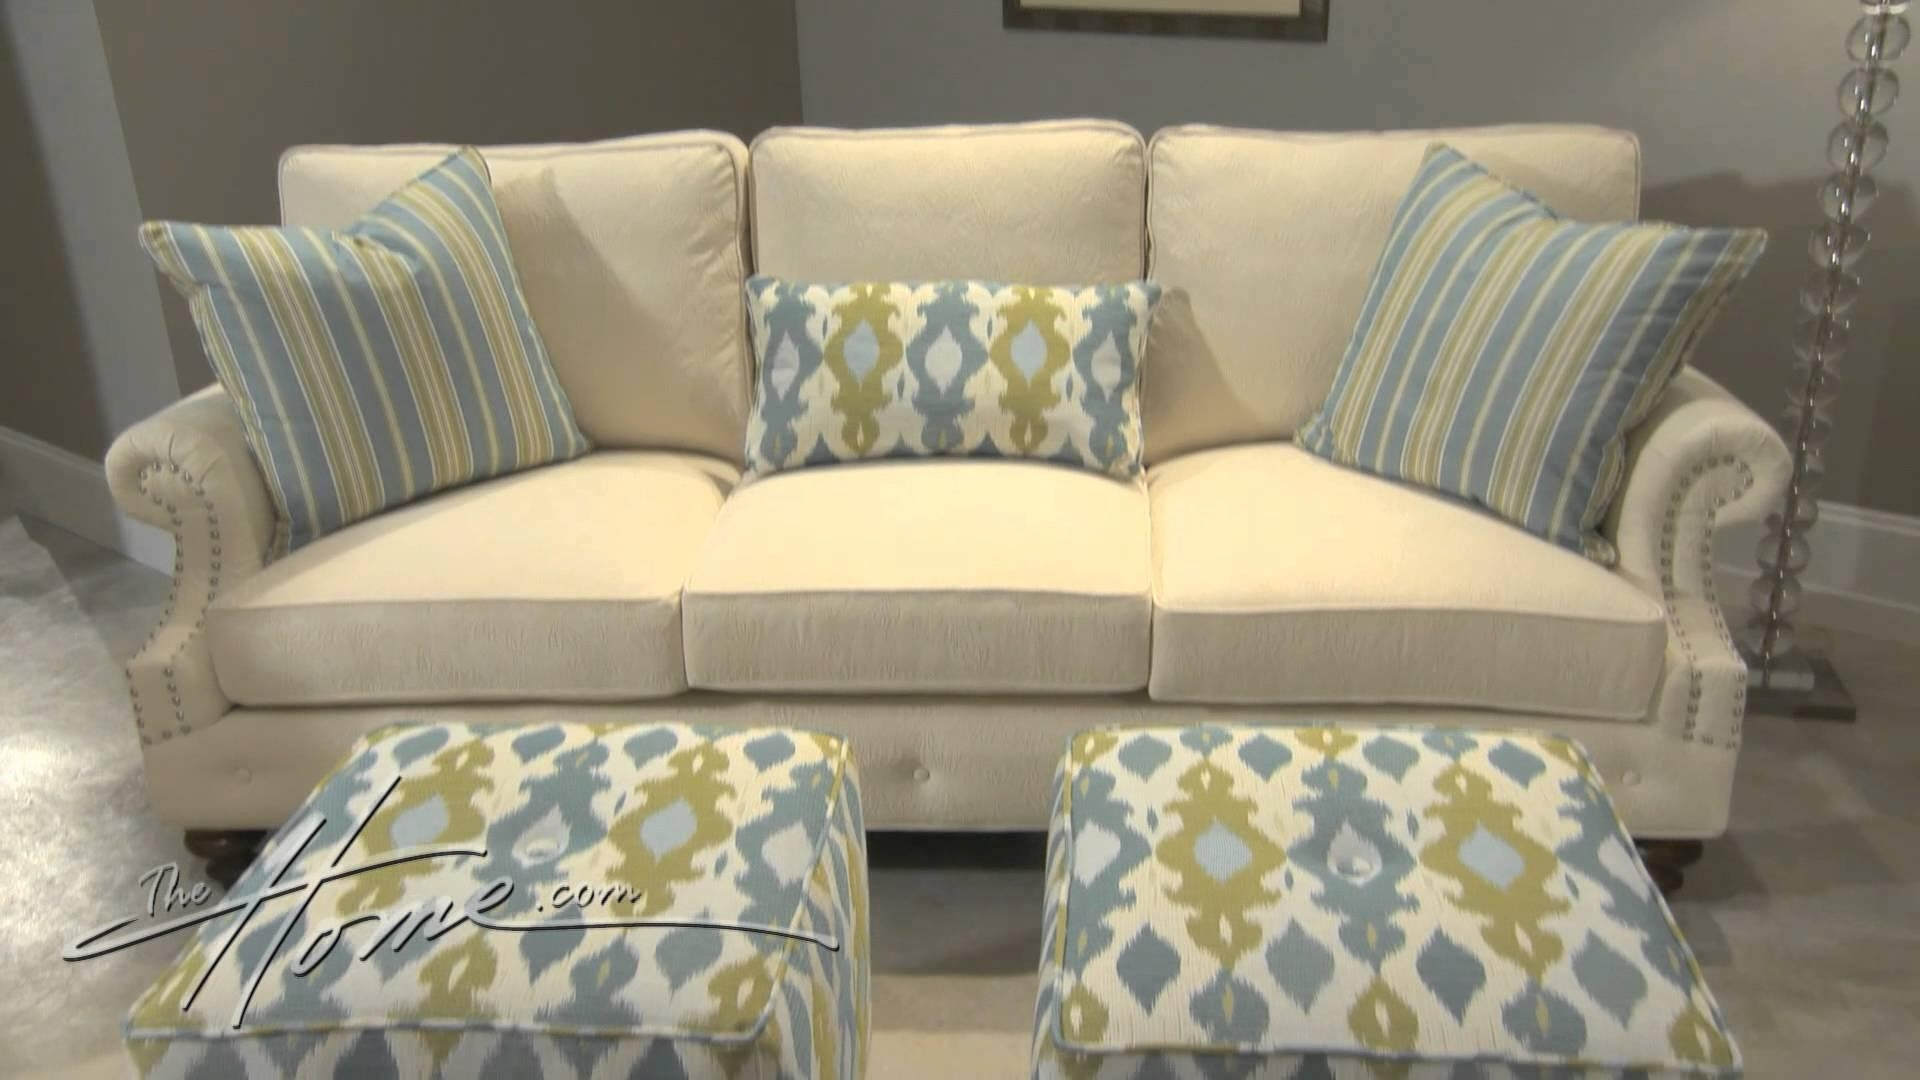 Furniture Introduces Sam Moore Sofas You Inside Image 6 Of